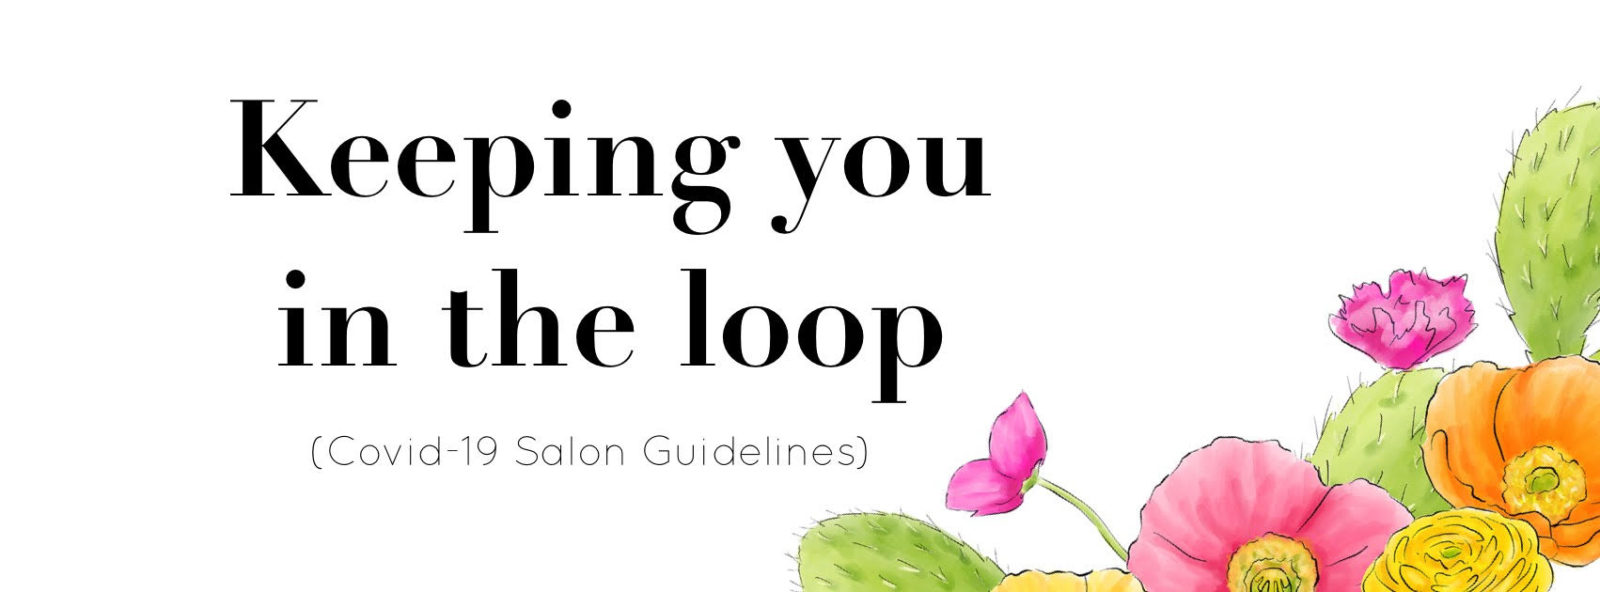 salon guidelines